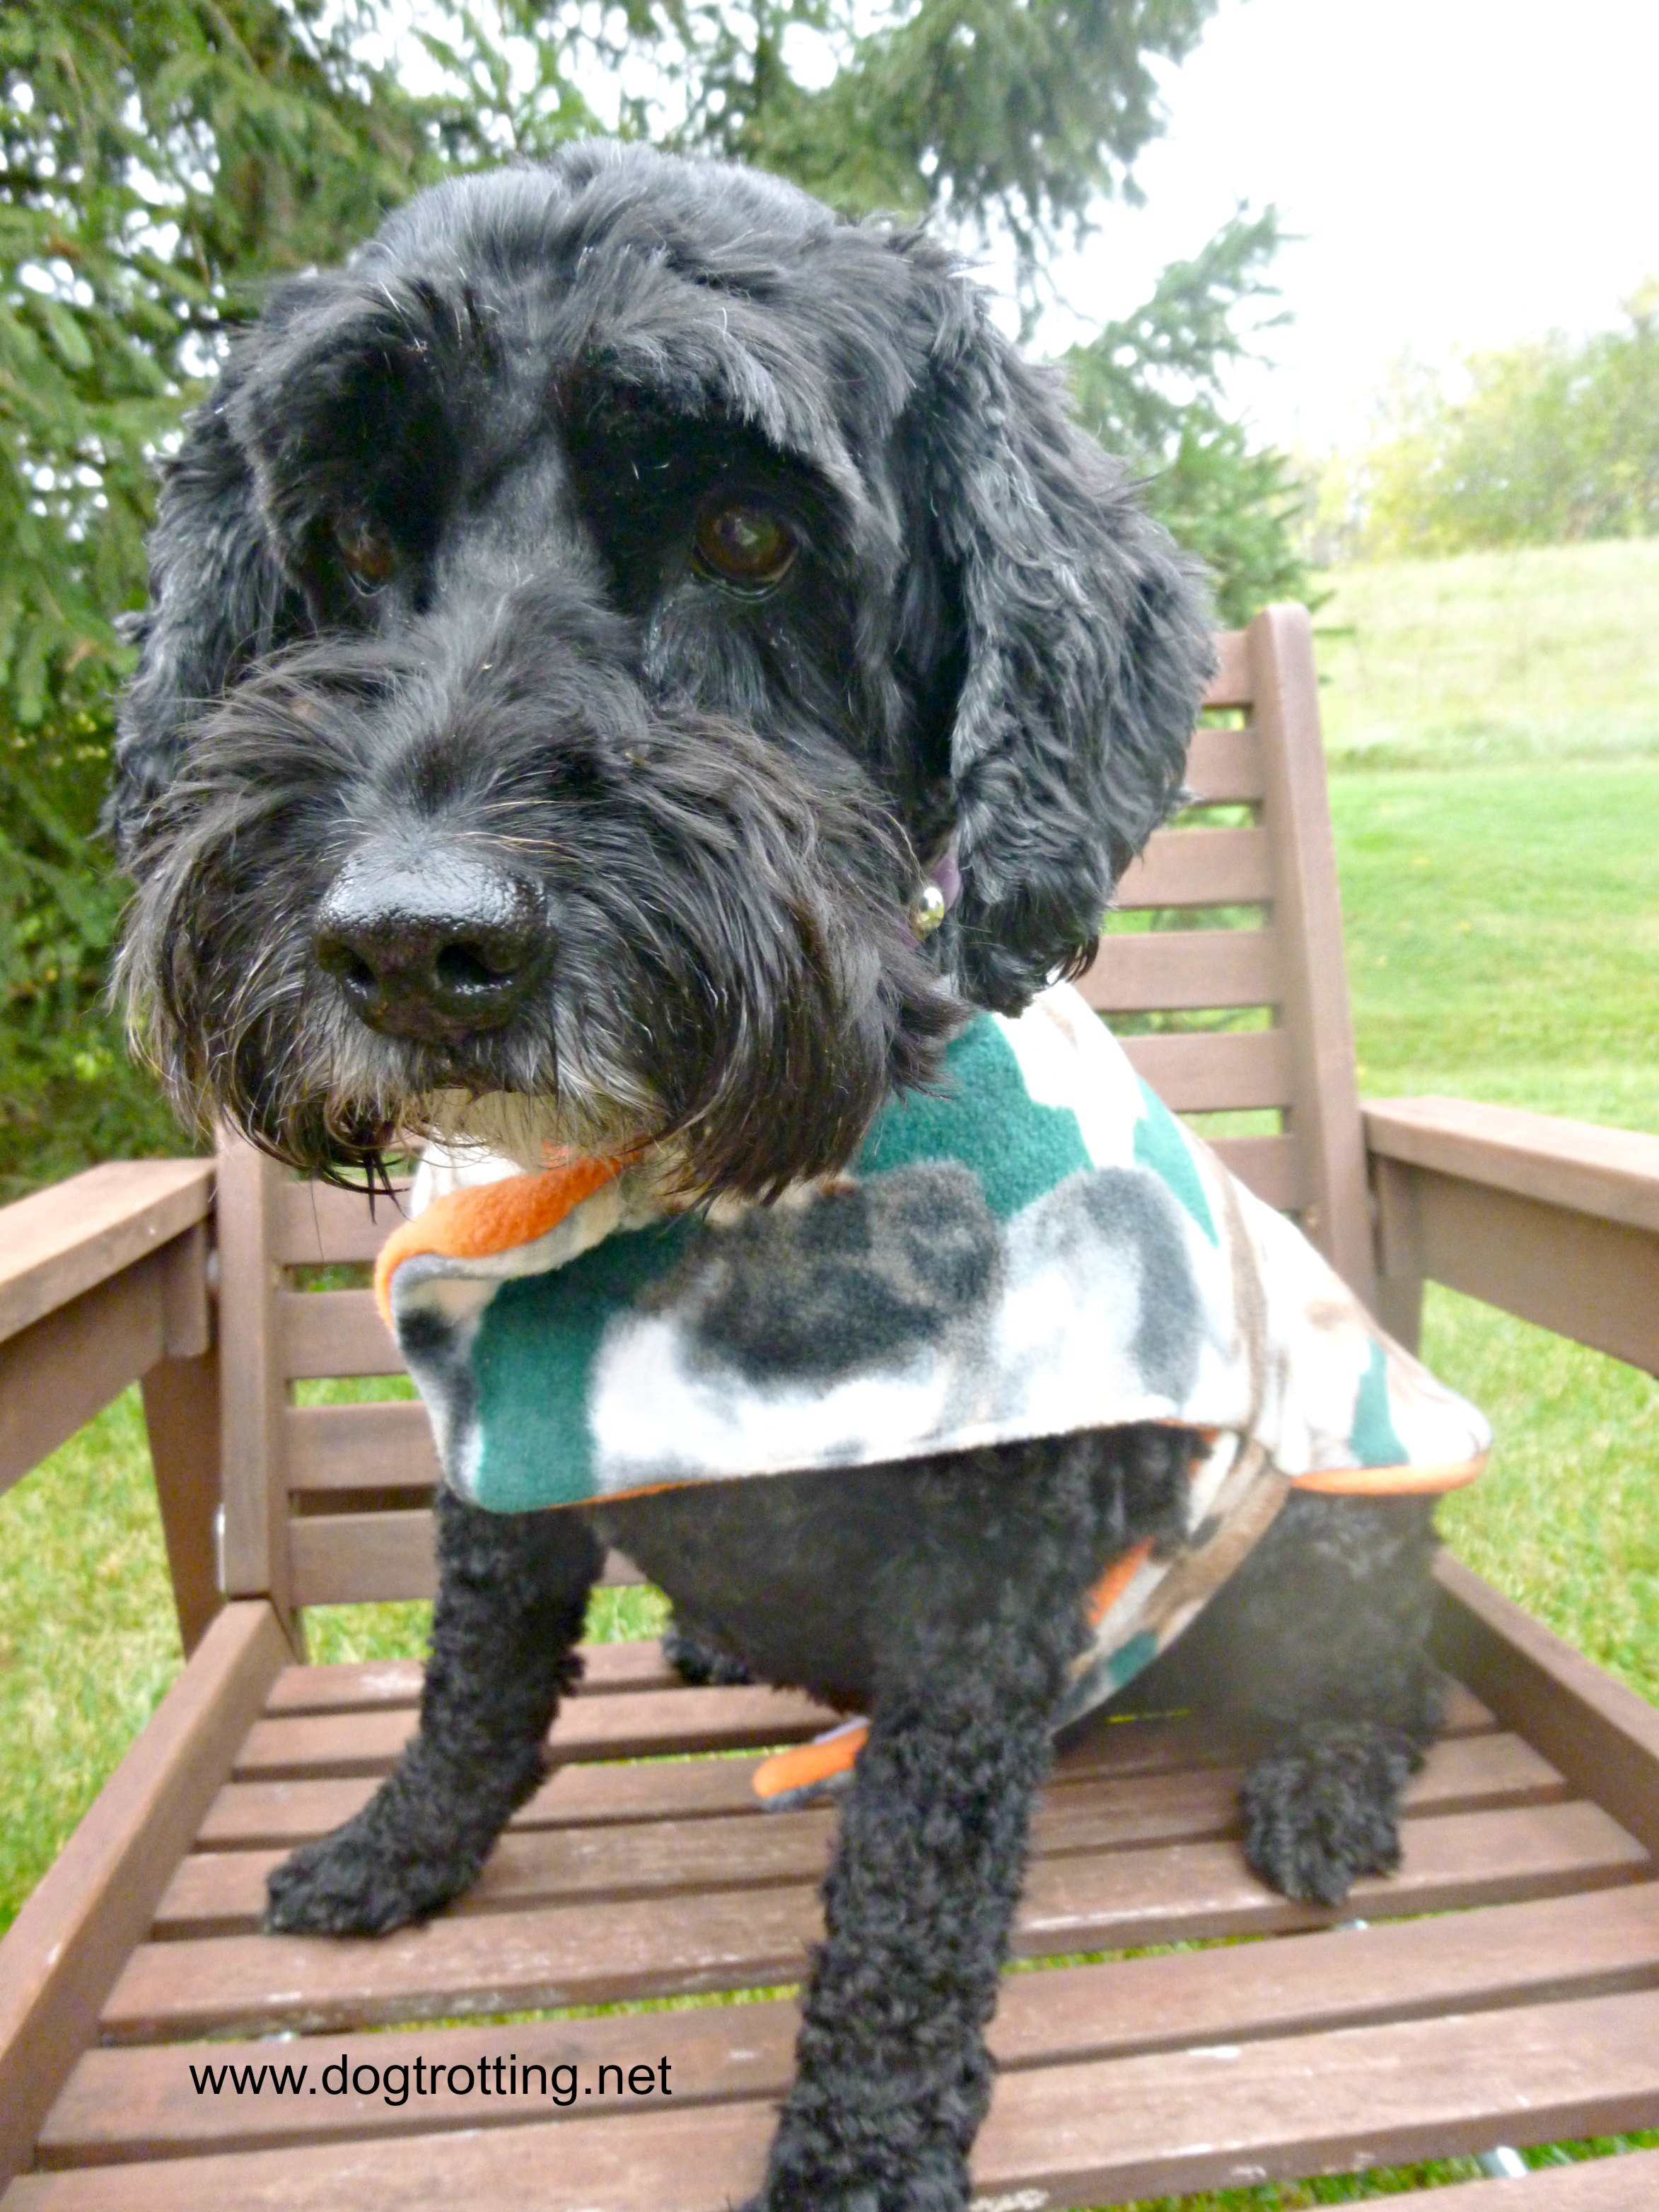 Dog wearing fall fleece jacket dogtrotting.net